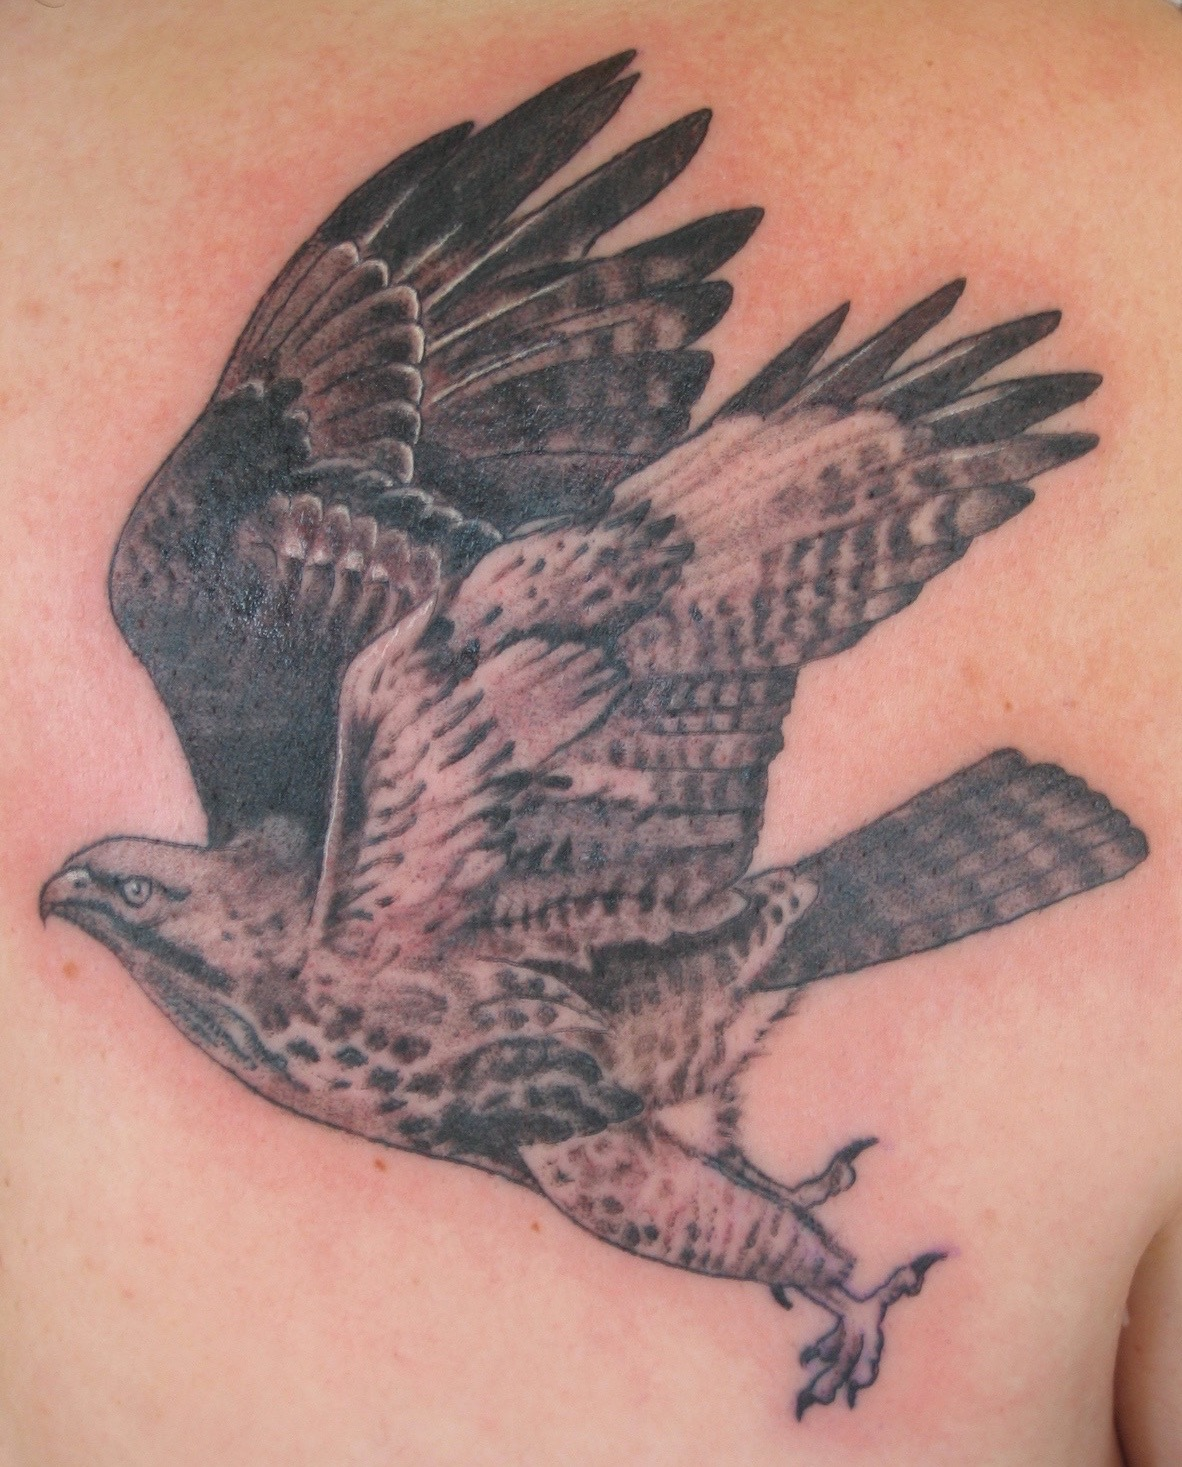 Hawk tattoo, Karina Mayorga